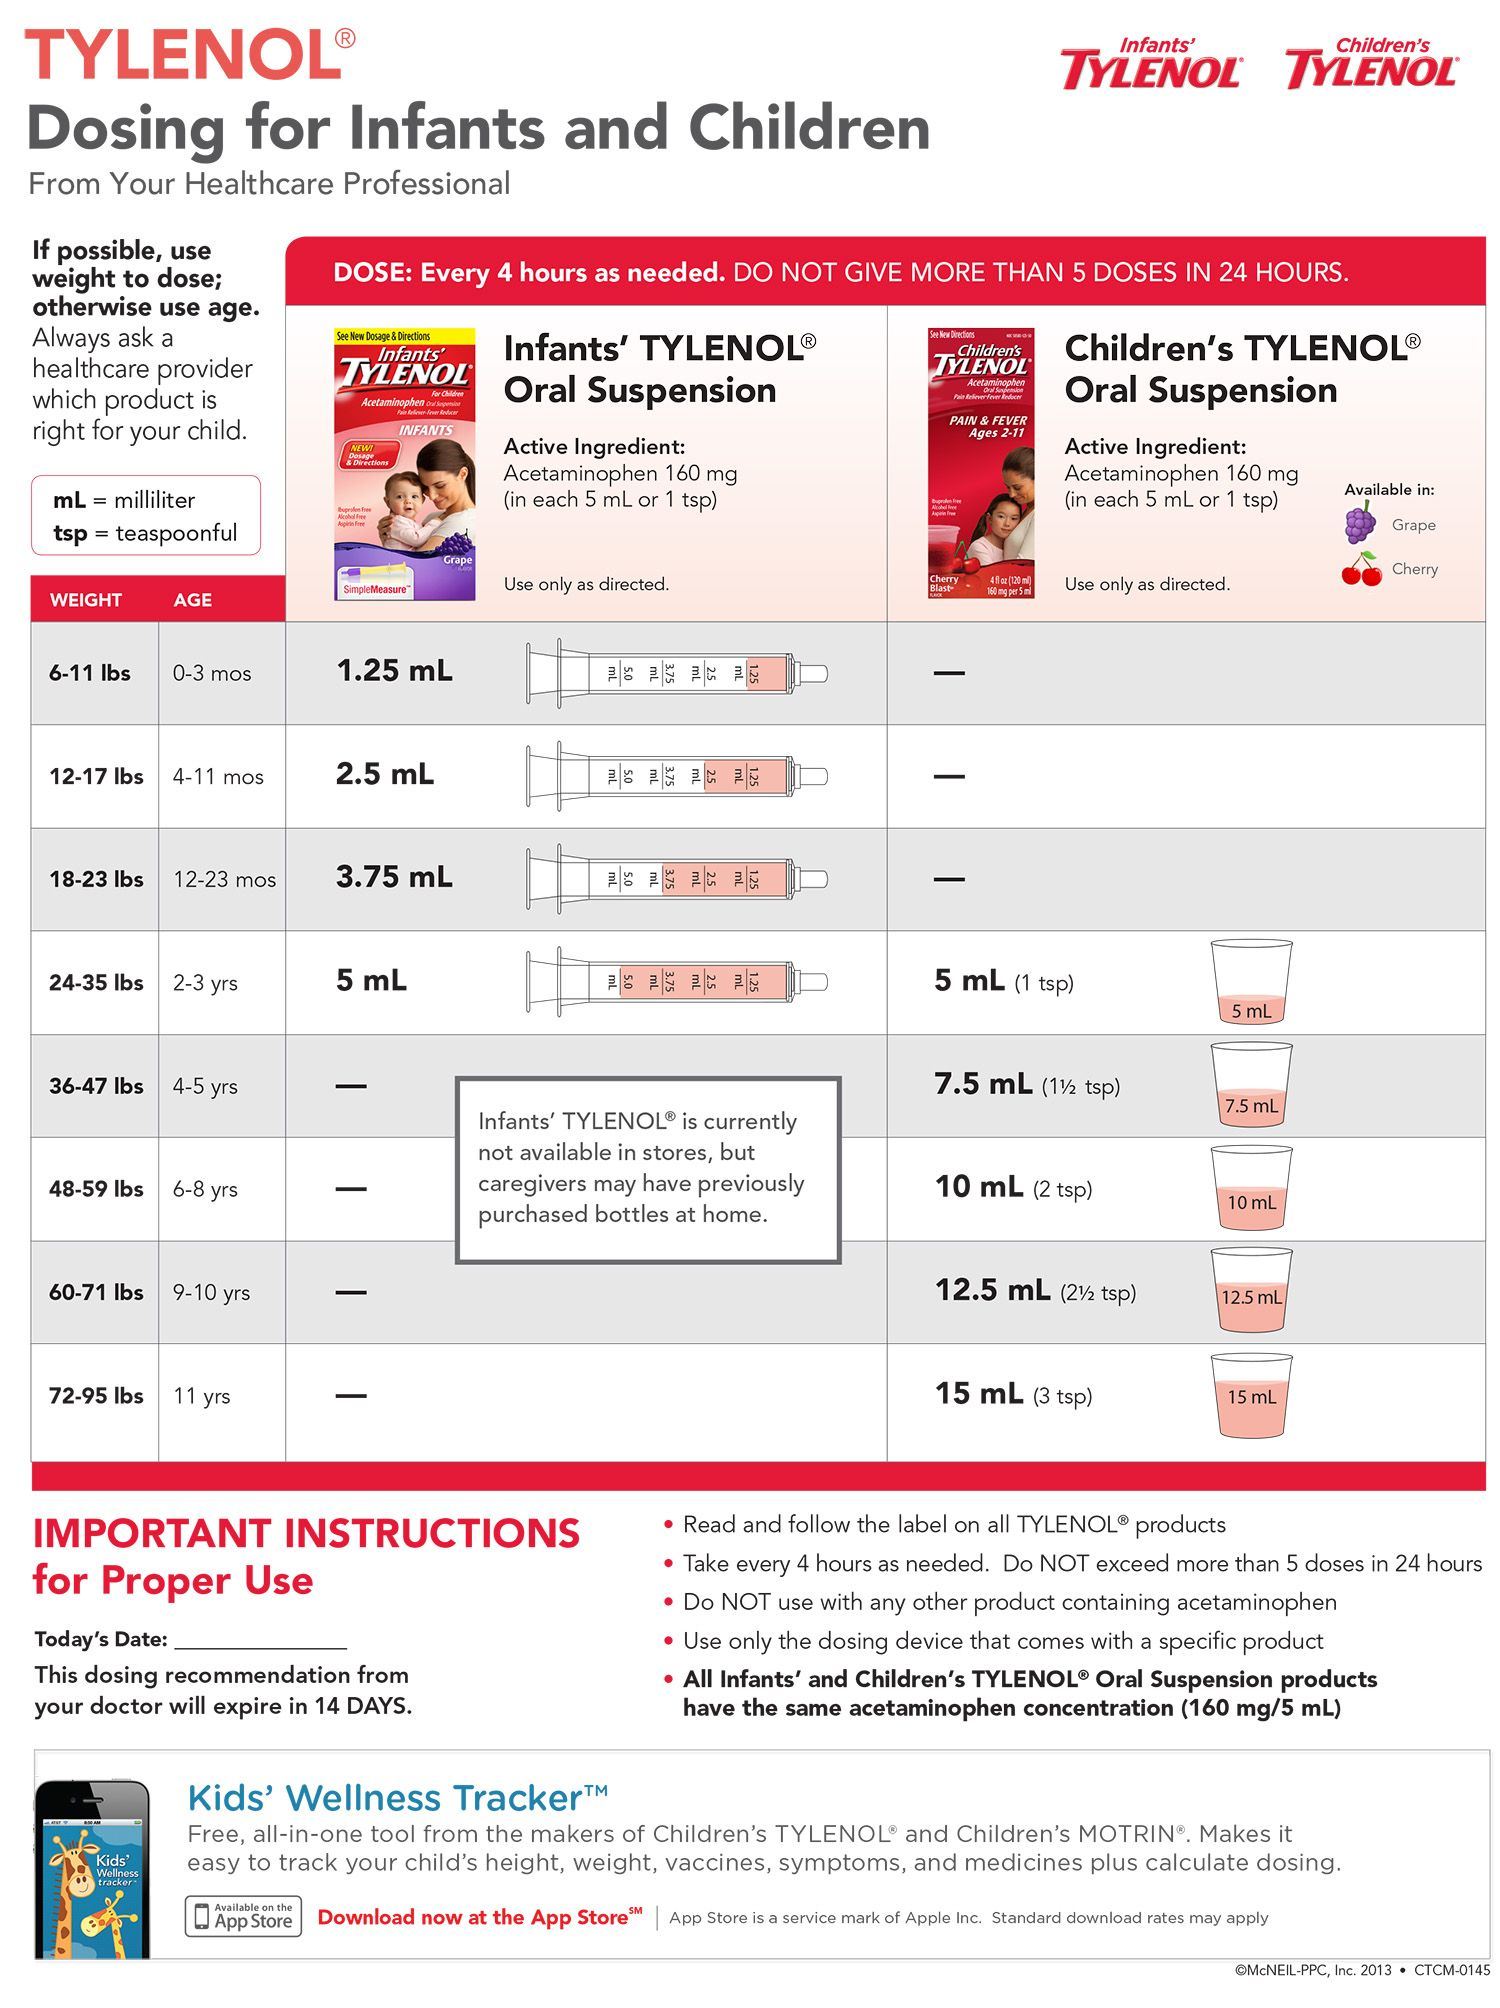 Correct Tylenol And Motrin Dosing For Infants Children